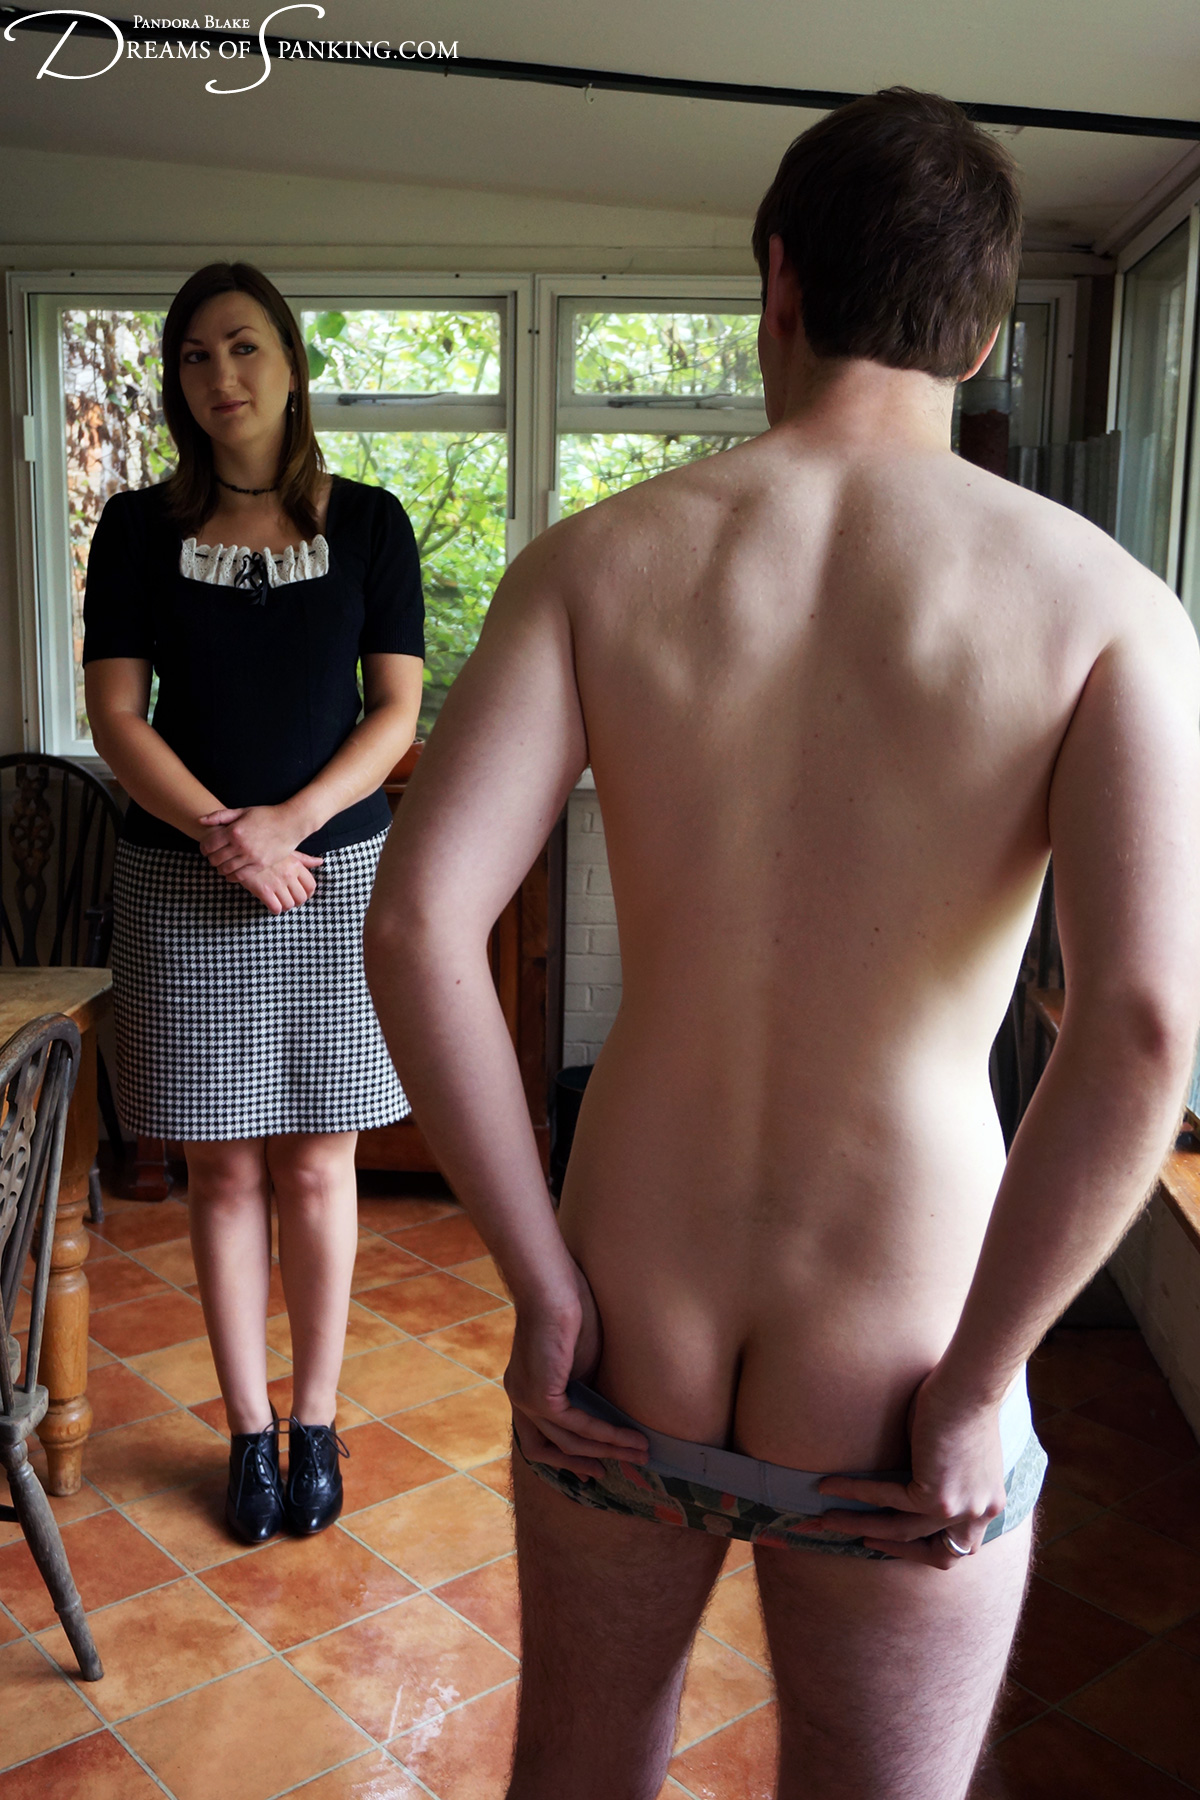 The Spanked Houseboy at Dreams of Spanking